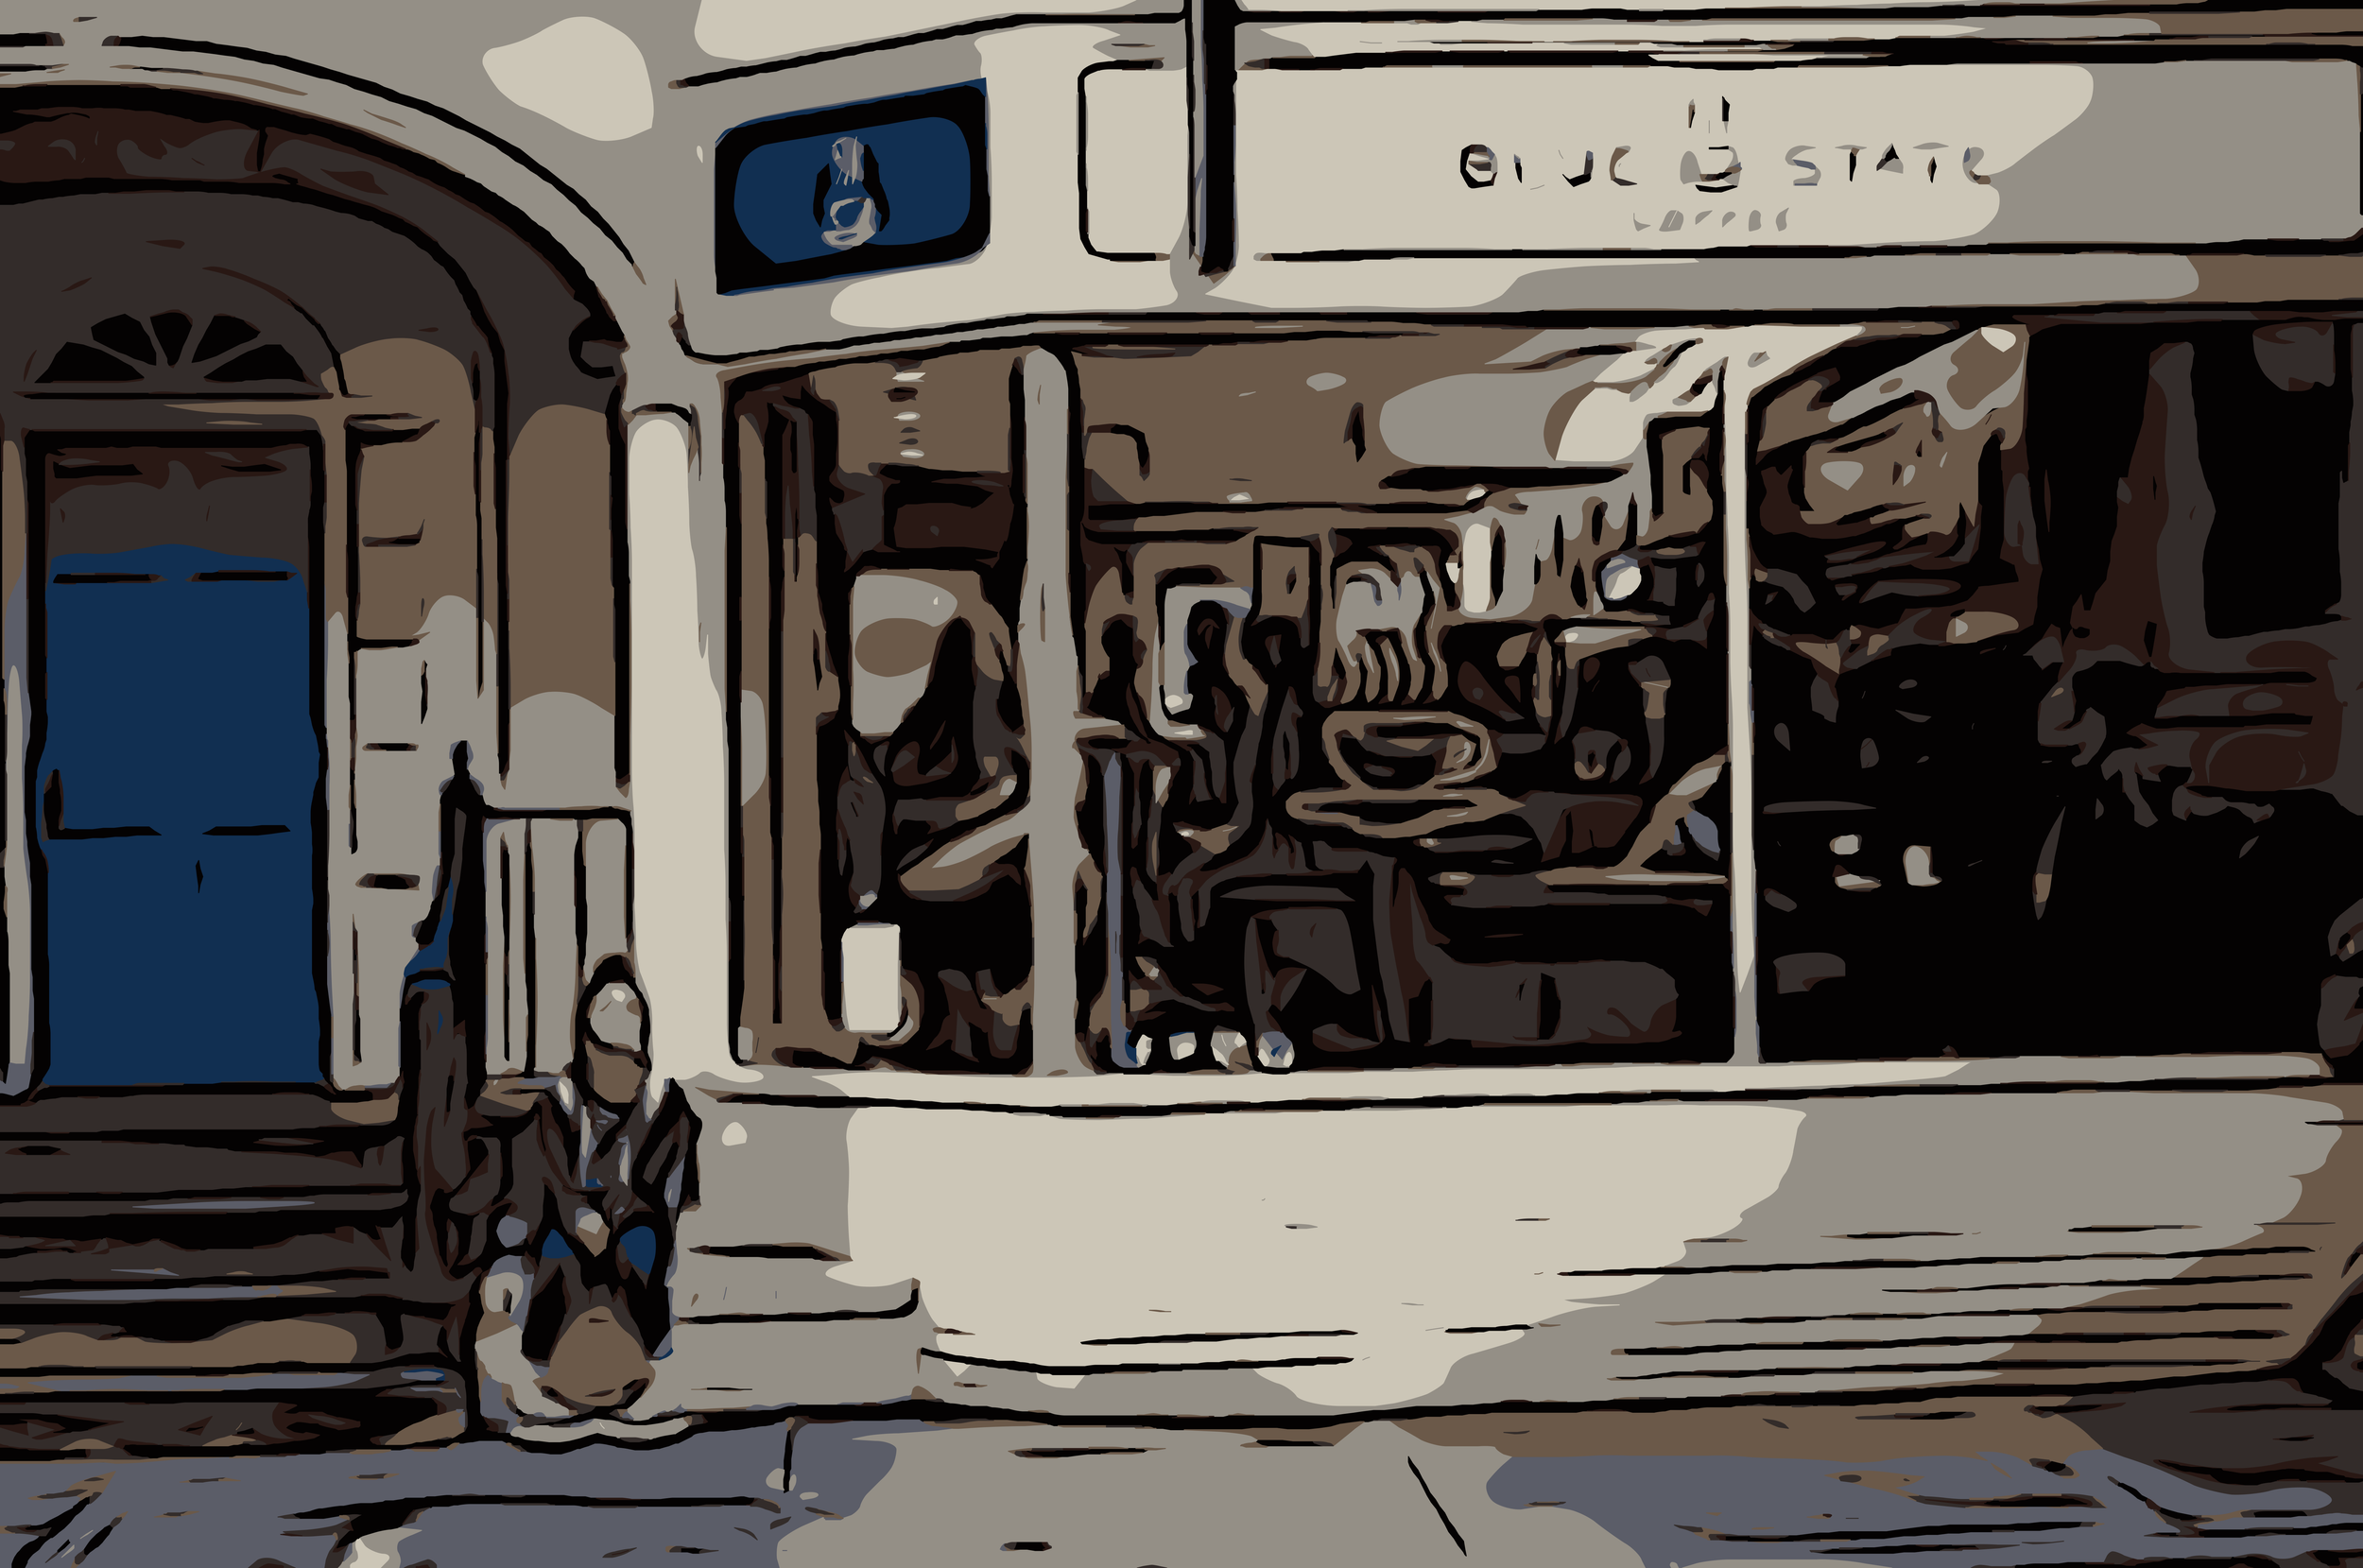 I have a tendency in any city I settle into to find a café I like and make that café a second home. During college, Blue State was a definite go-to... -